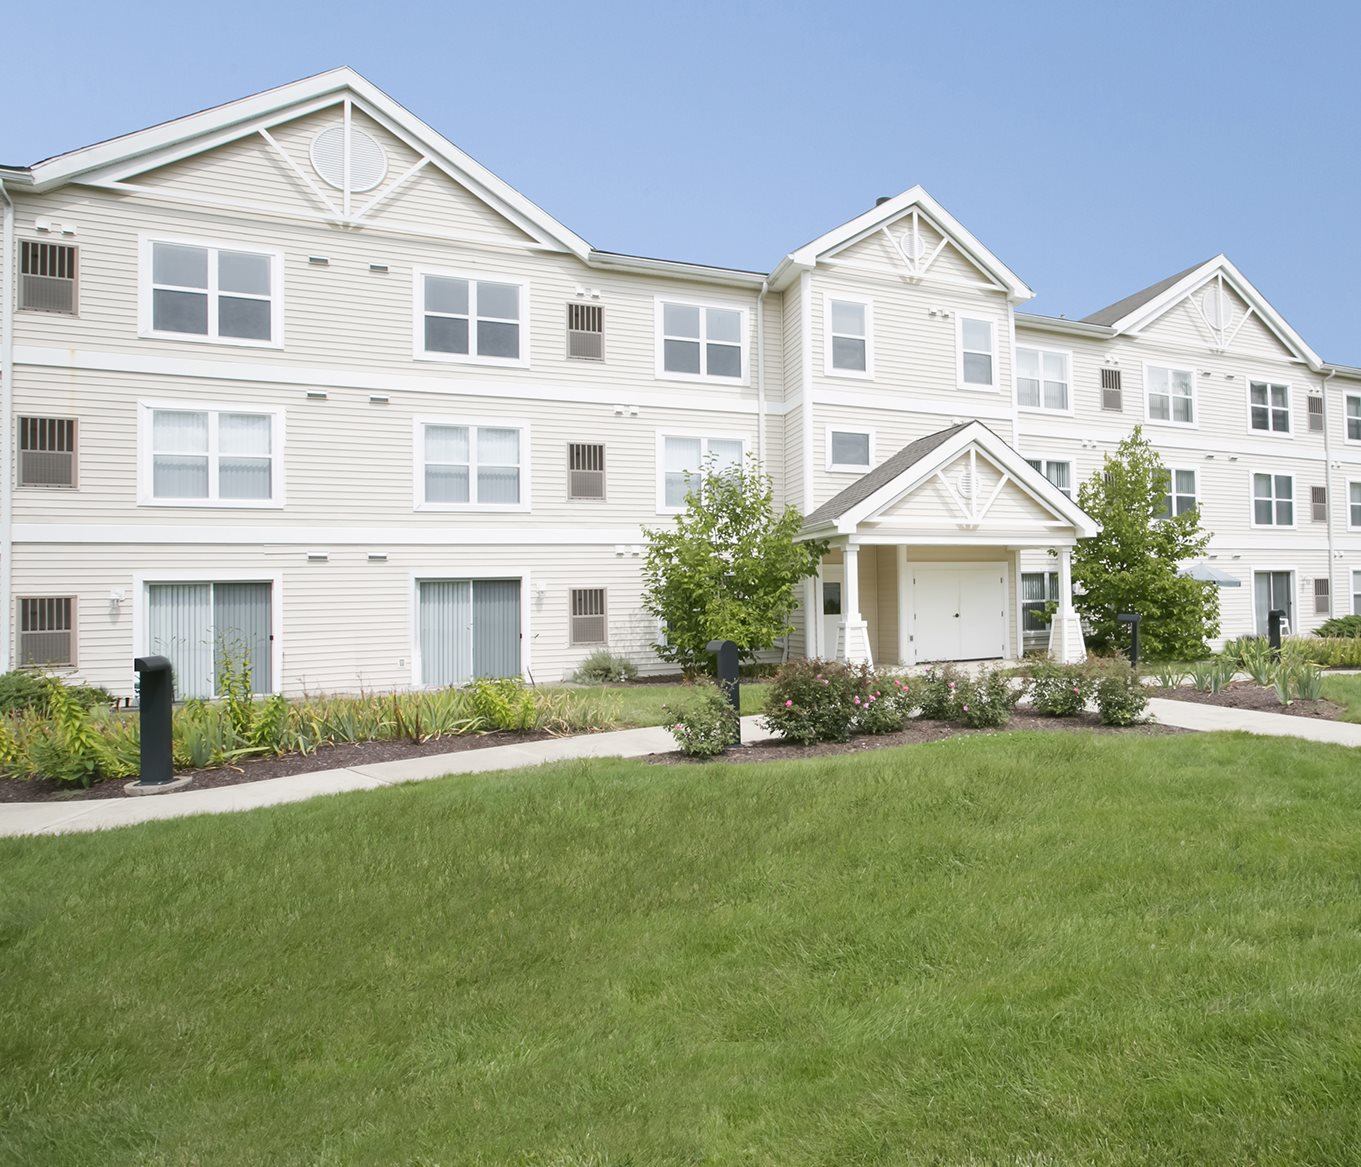 Lexington Club at Galleria Apartments for rent in Poughkeepsie, NY. Make this community your new home or visit other ConcordRENTS communities at ConcordRENTS.com. Building exterior